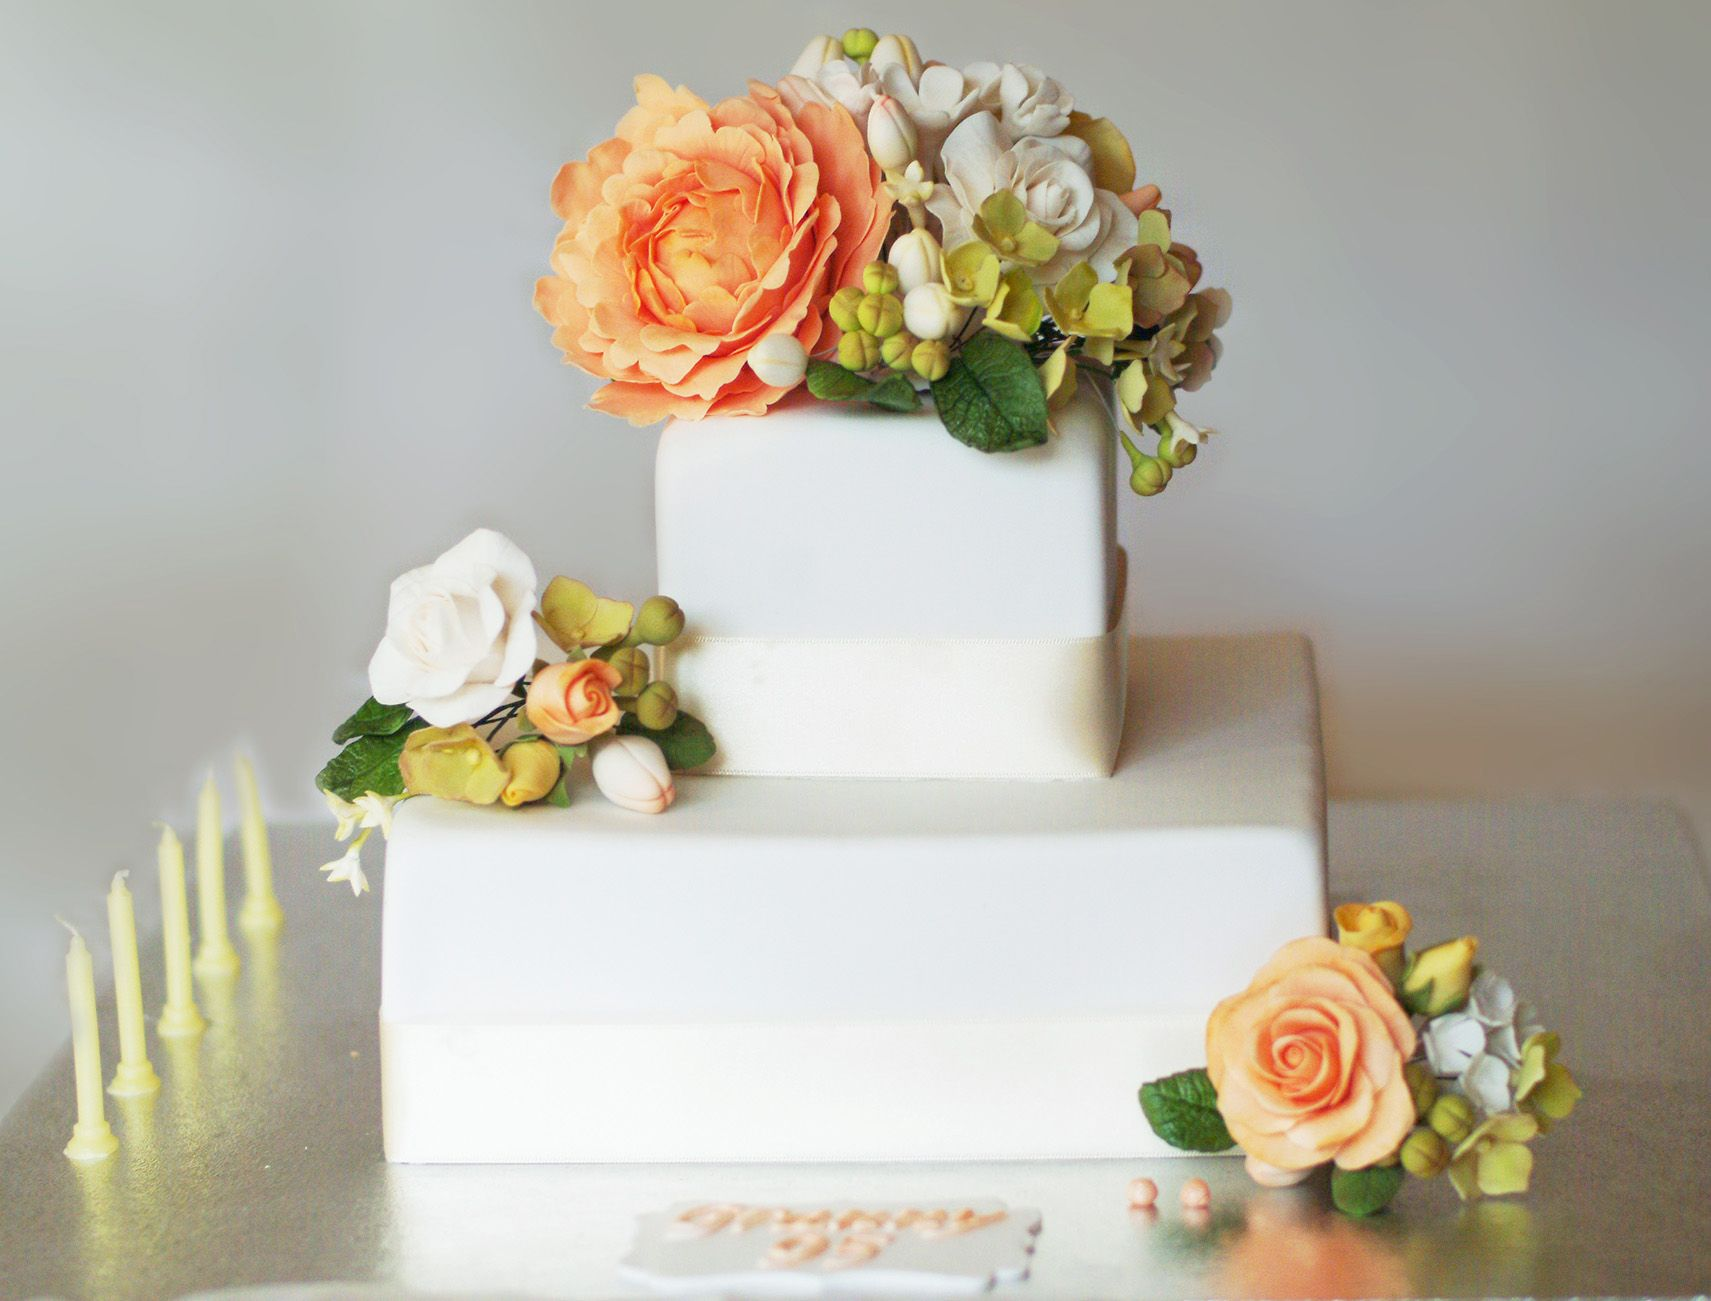 Pin by Lauren Bowen on Our Homemade Cakes Floral cake